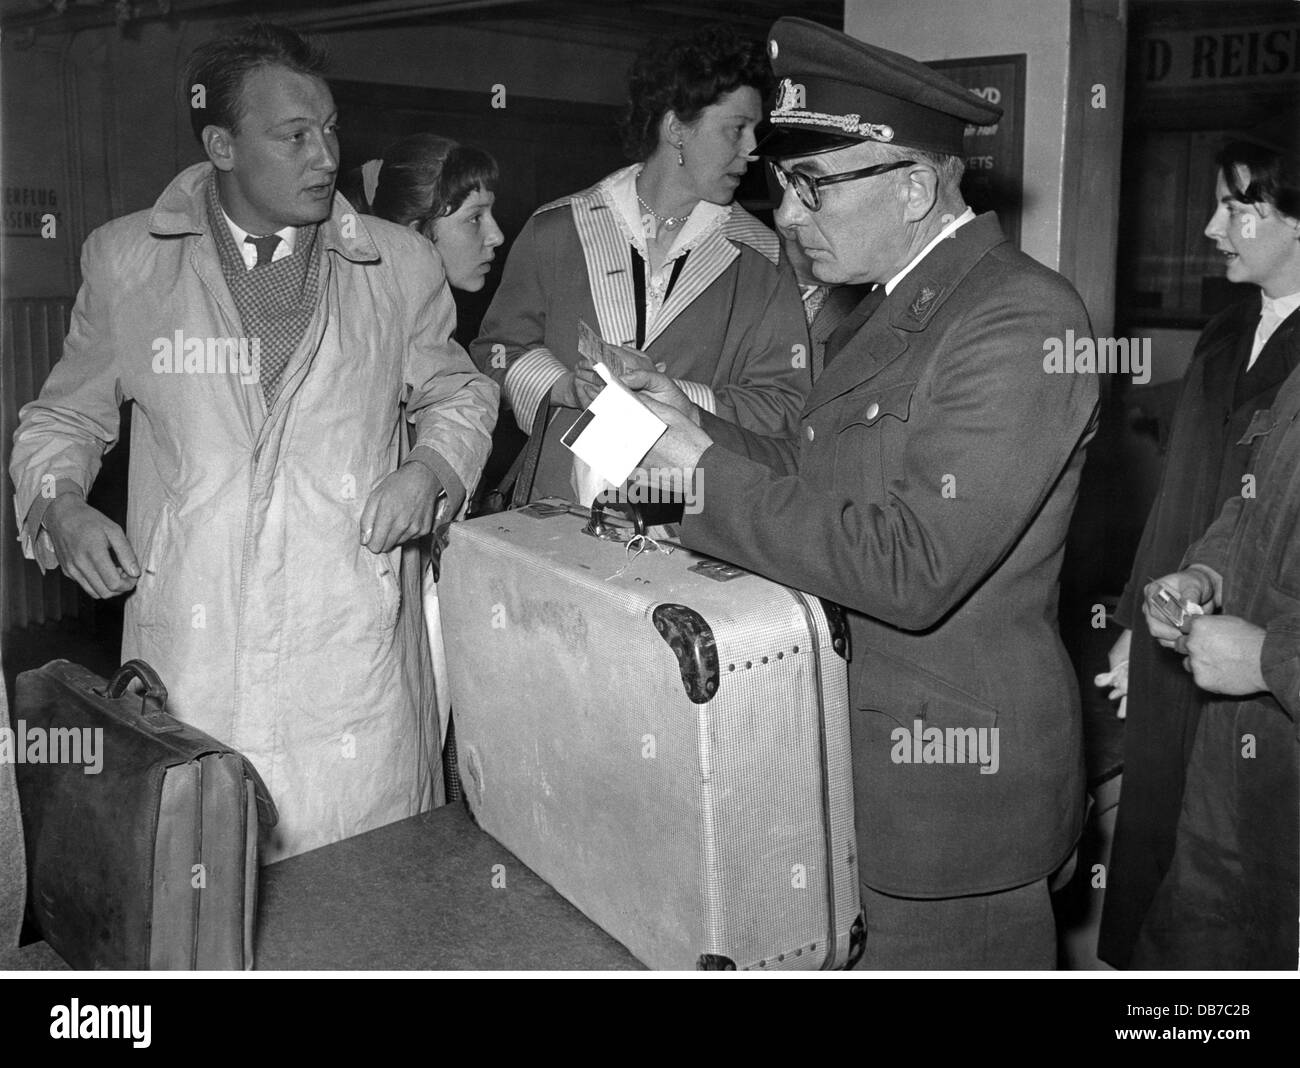 borders, customs, customs clearance, airport Hamburg, late 1950s, Additional-Rights-Clearences-NA - Stock Image